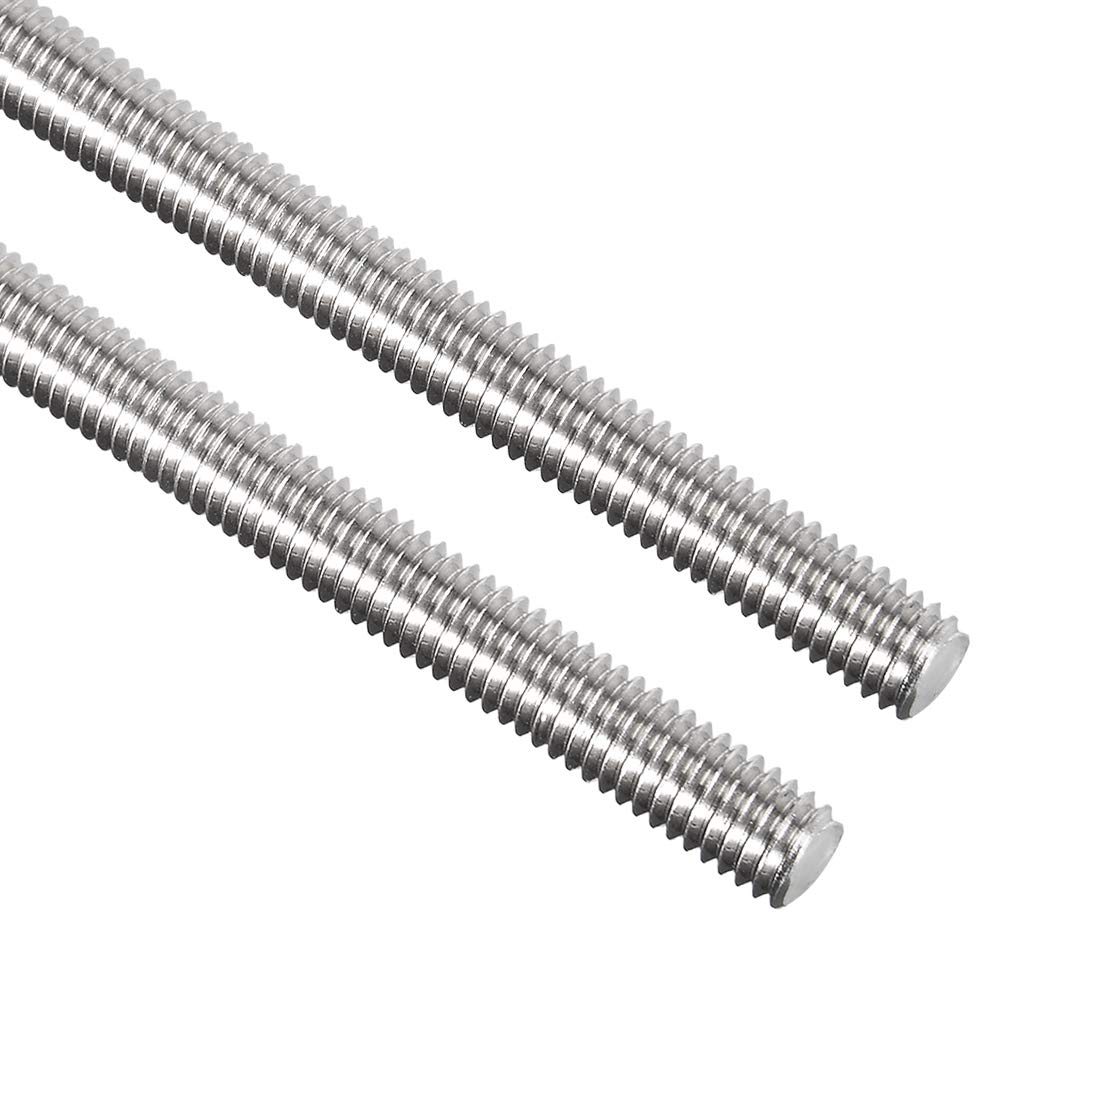 Awclub 2pcs M6 x 250mm Fully Threaded Rod, 304 Stainless Steel Long Threaded Screw,Right Hand Threads for Anchor Bolts,Clamps,Hangers and U-Bolts